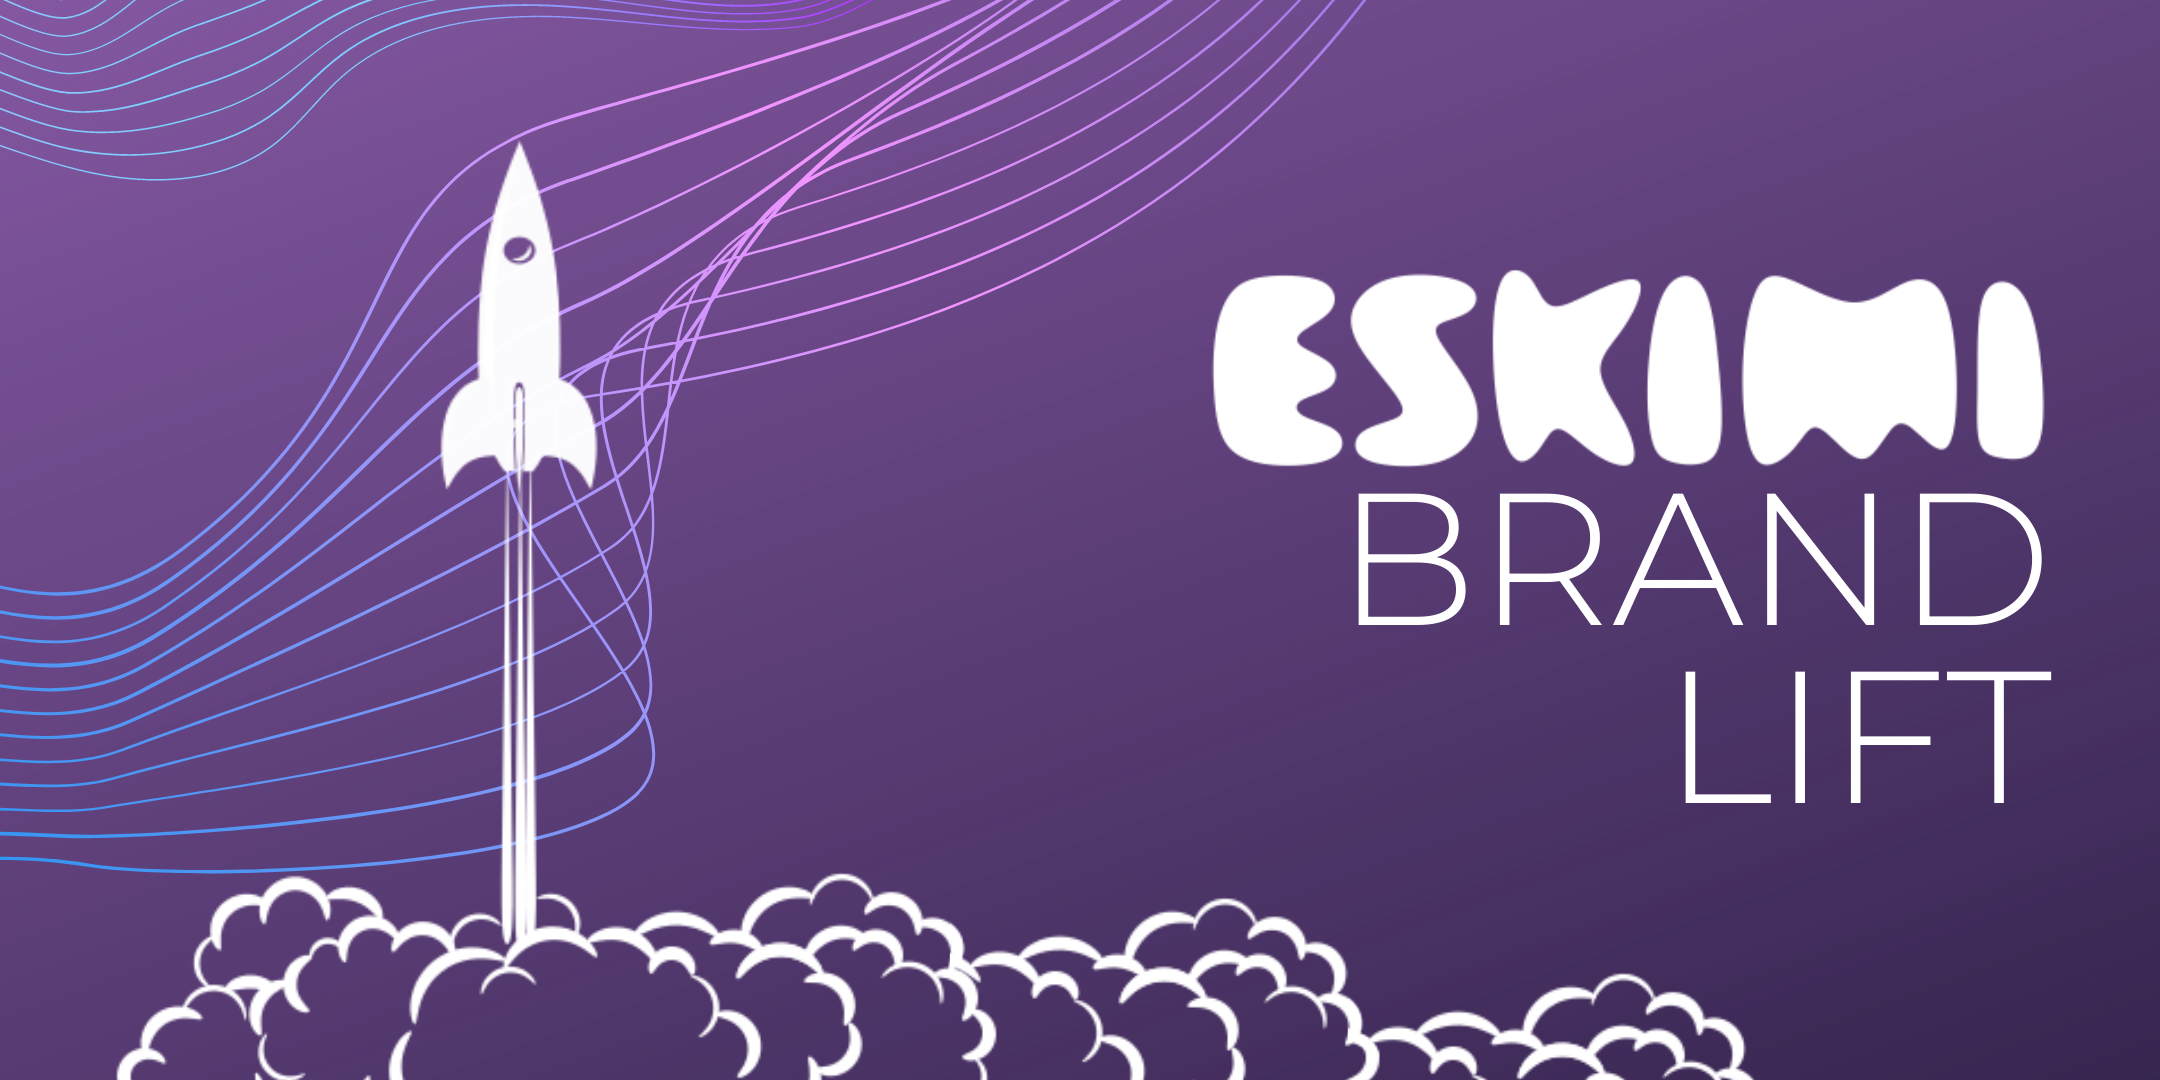 Eskimi Brand Lift Study: How Powerful Are Your Ads?